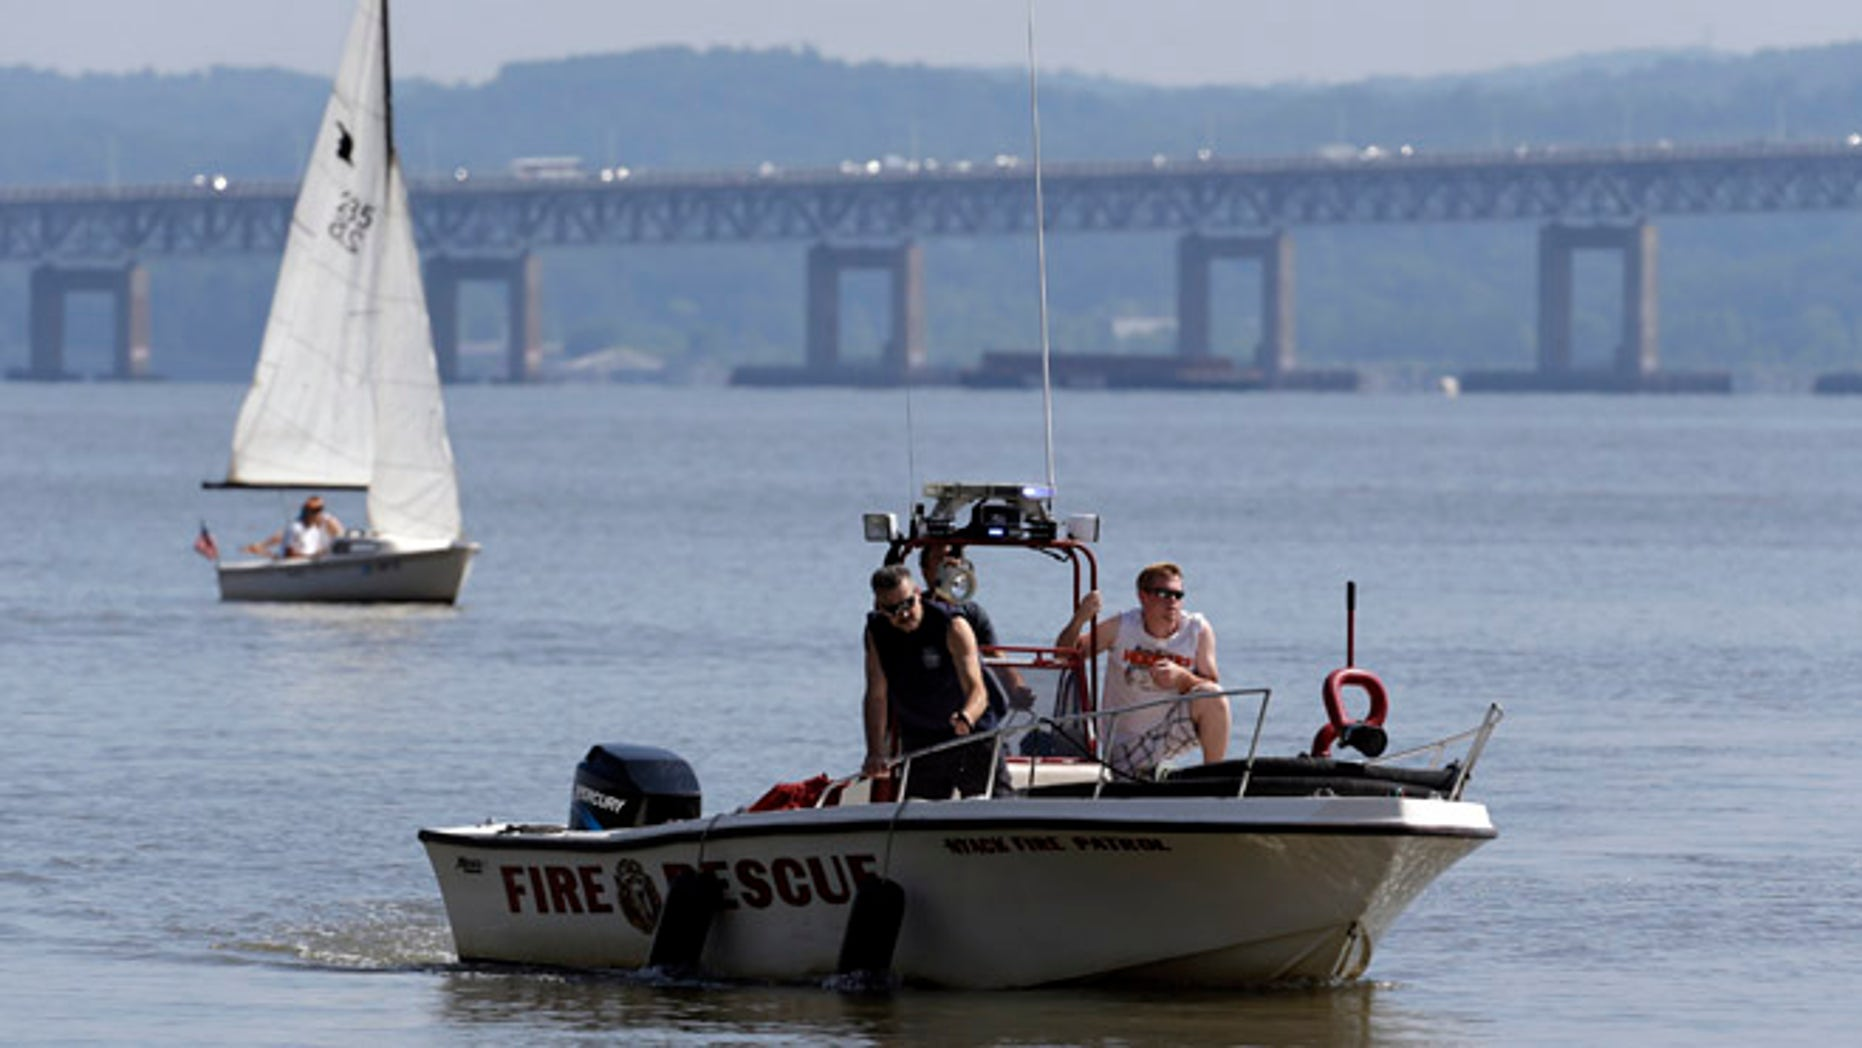 July 27, 2013: Rescue workers on a boat search the Hudson River south of the Tappan Zee Bridge for two people who went missing following a boat crash in Piermont, N.Y. Two people are missing and four others are injured after their boat struck a barge under the bridge, according to the Coast Guard.